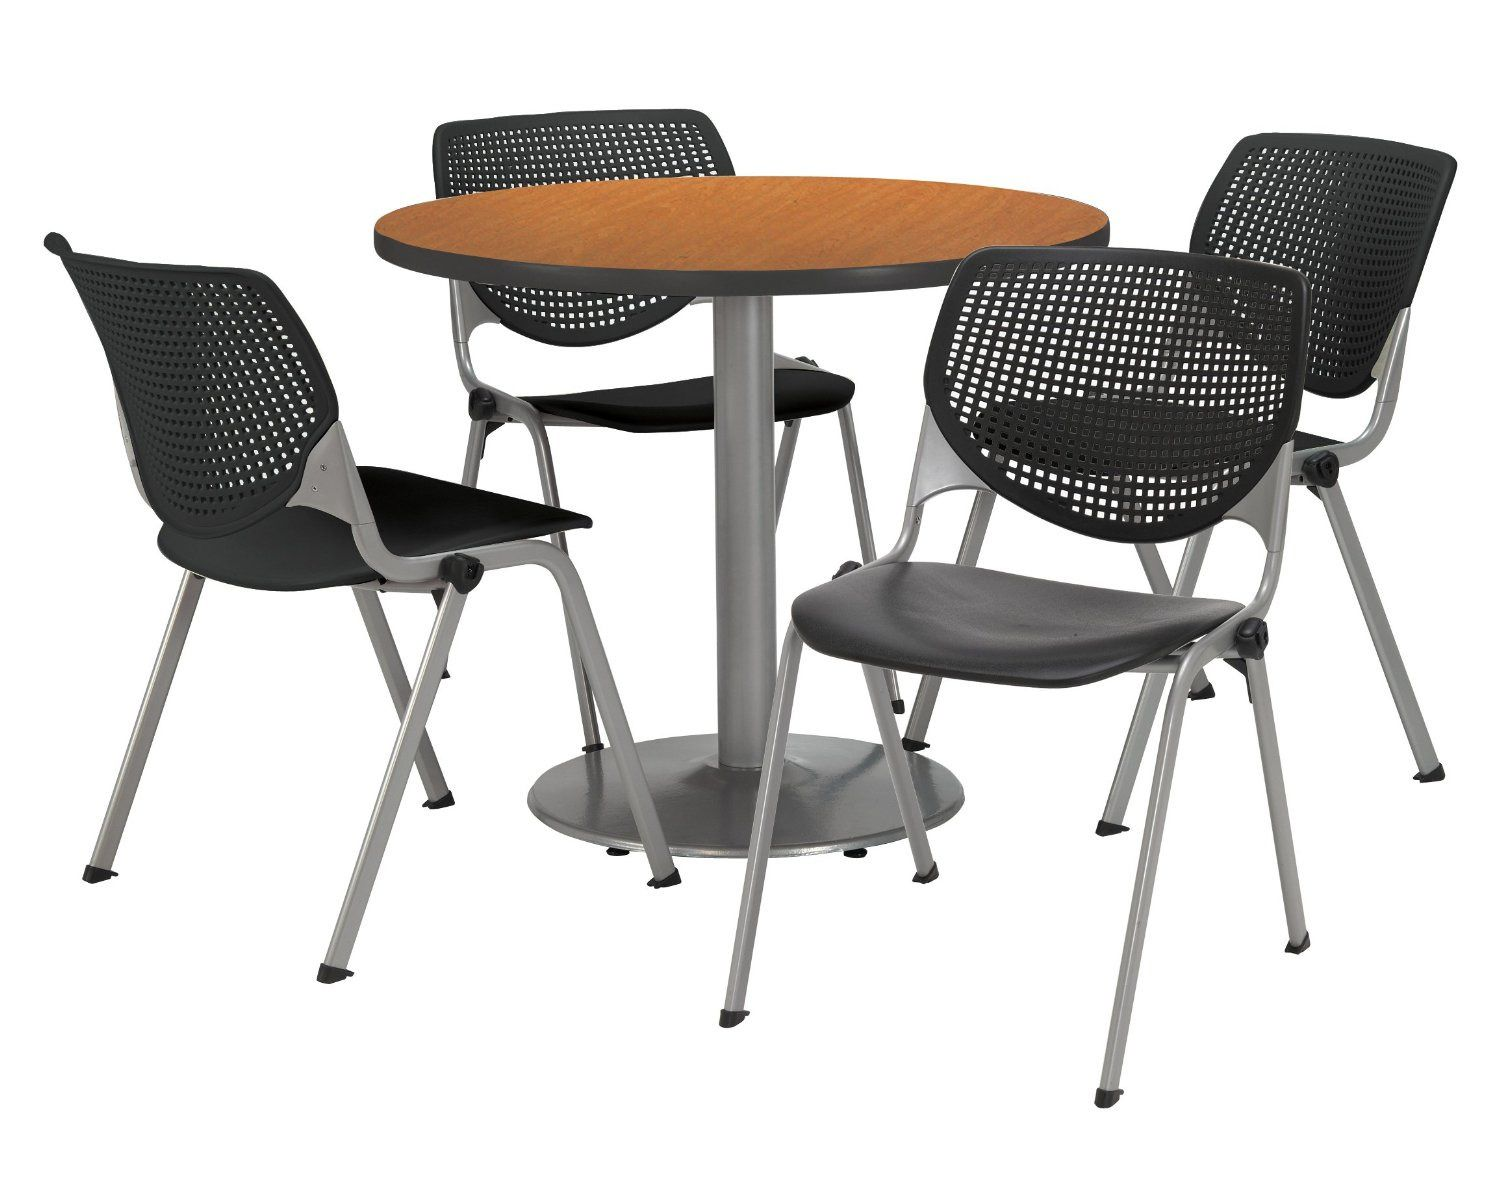 Round Office Tables And Chairs Best Paint For Wood Furniture - Round office table with chairs